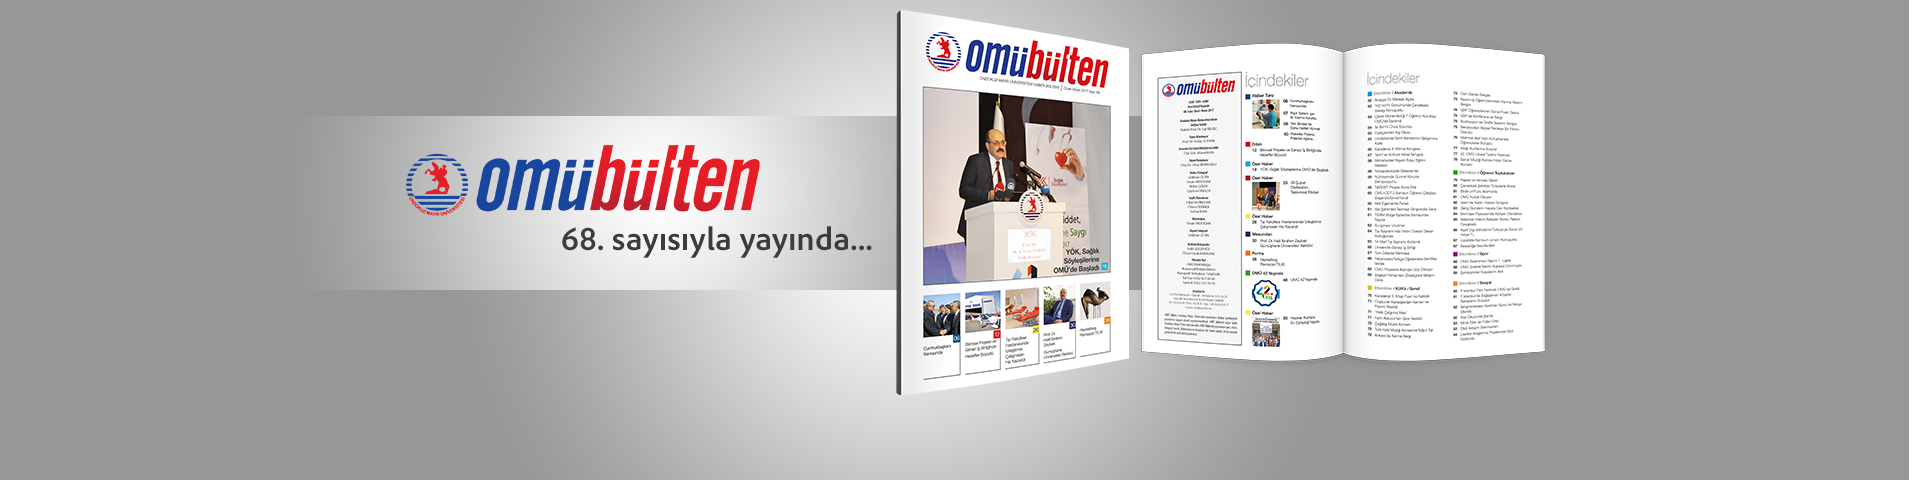 http://www.omu.edu.tr/sites/default/files/files/e-dergi_-_omu_bulten_68._sayisi/omubulten68-slider.jpg